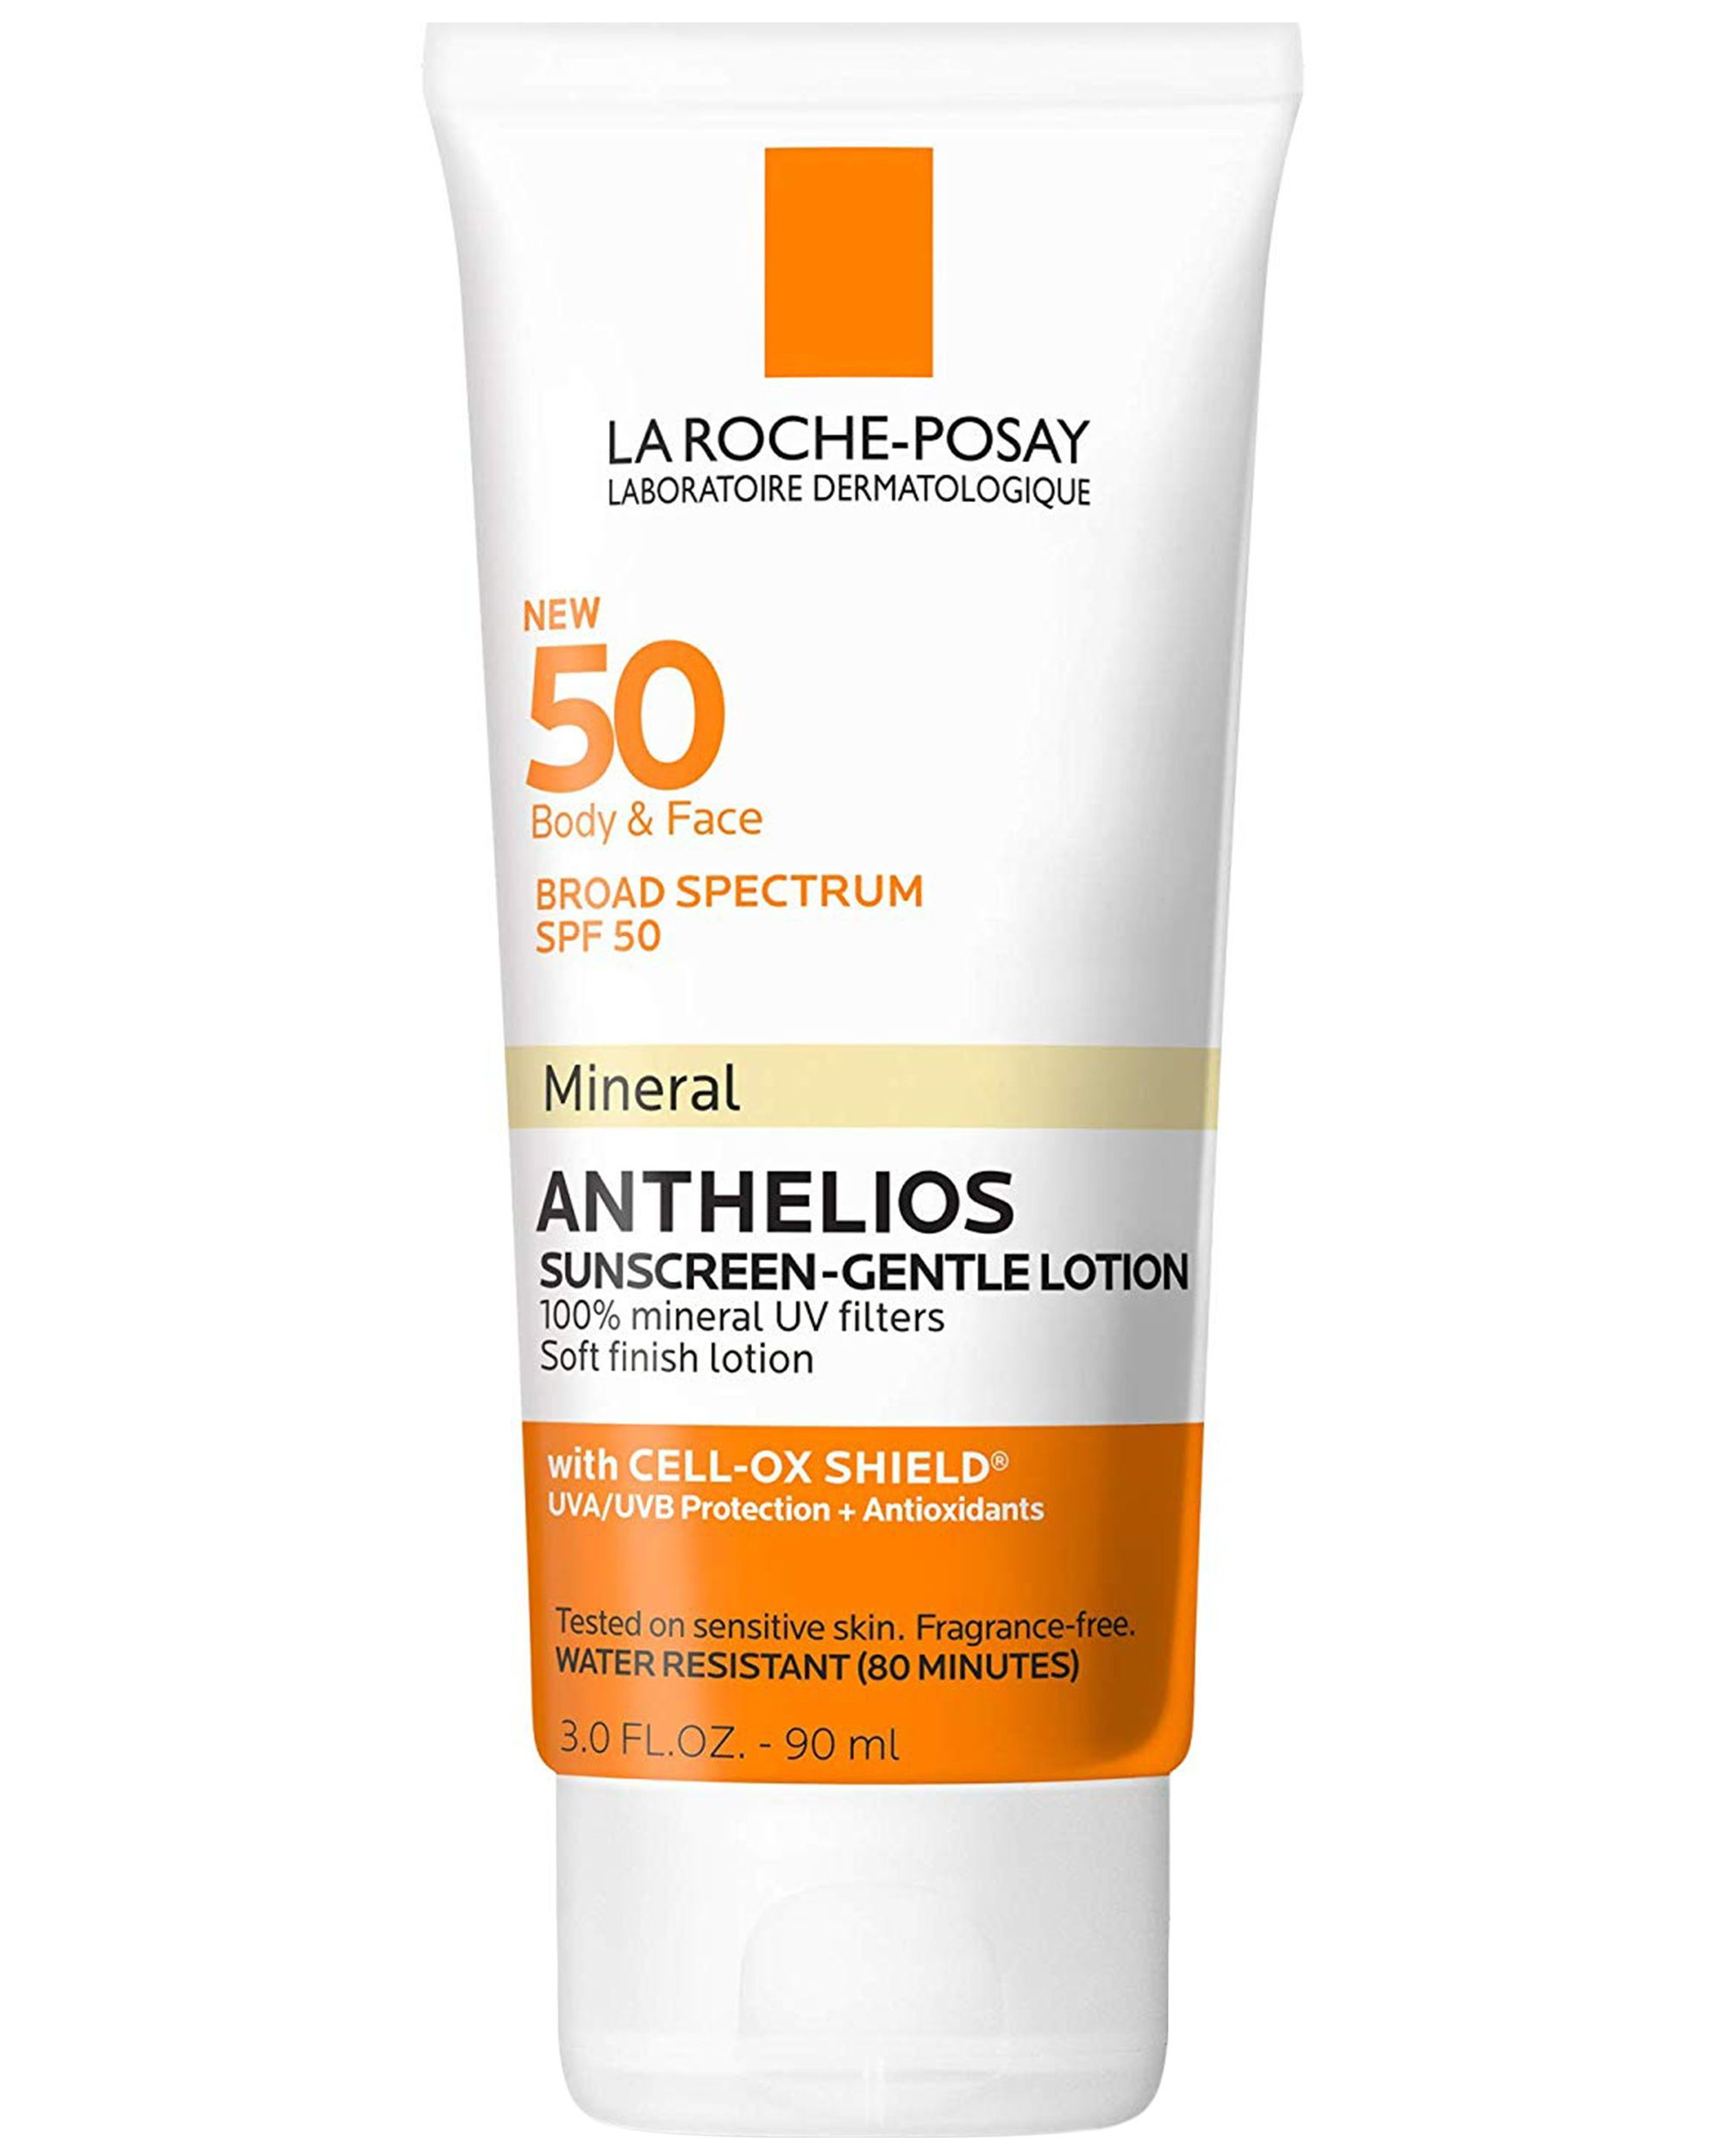 Editor S Picks The 33 Best Mineral Sunscreens And How To Choose The Right One For Your Skin Mineral Sunscreen Sunscreen For Sensitive Skin Body Sunscreen